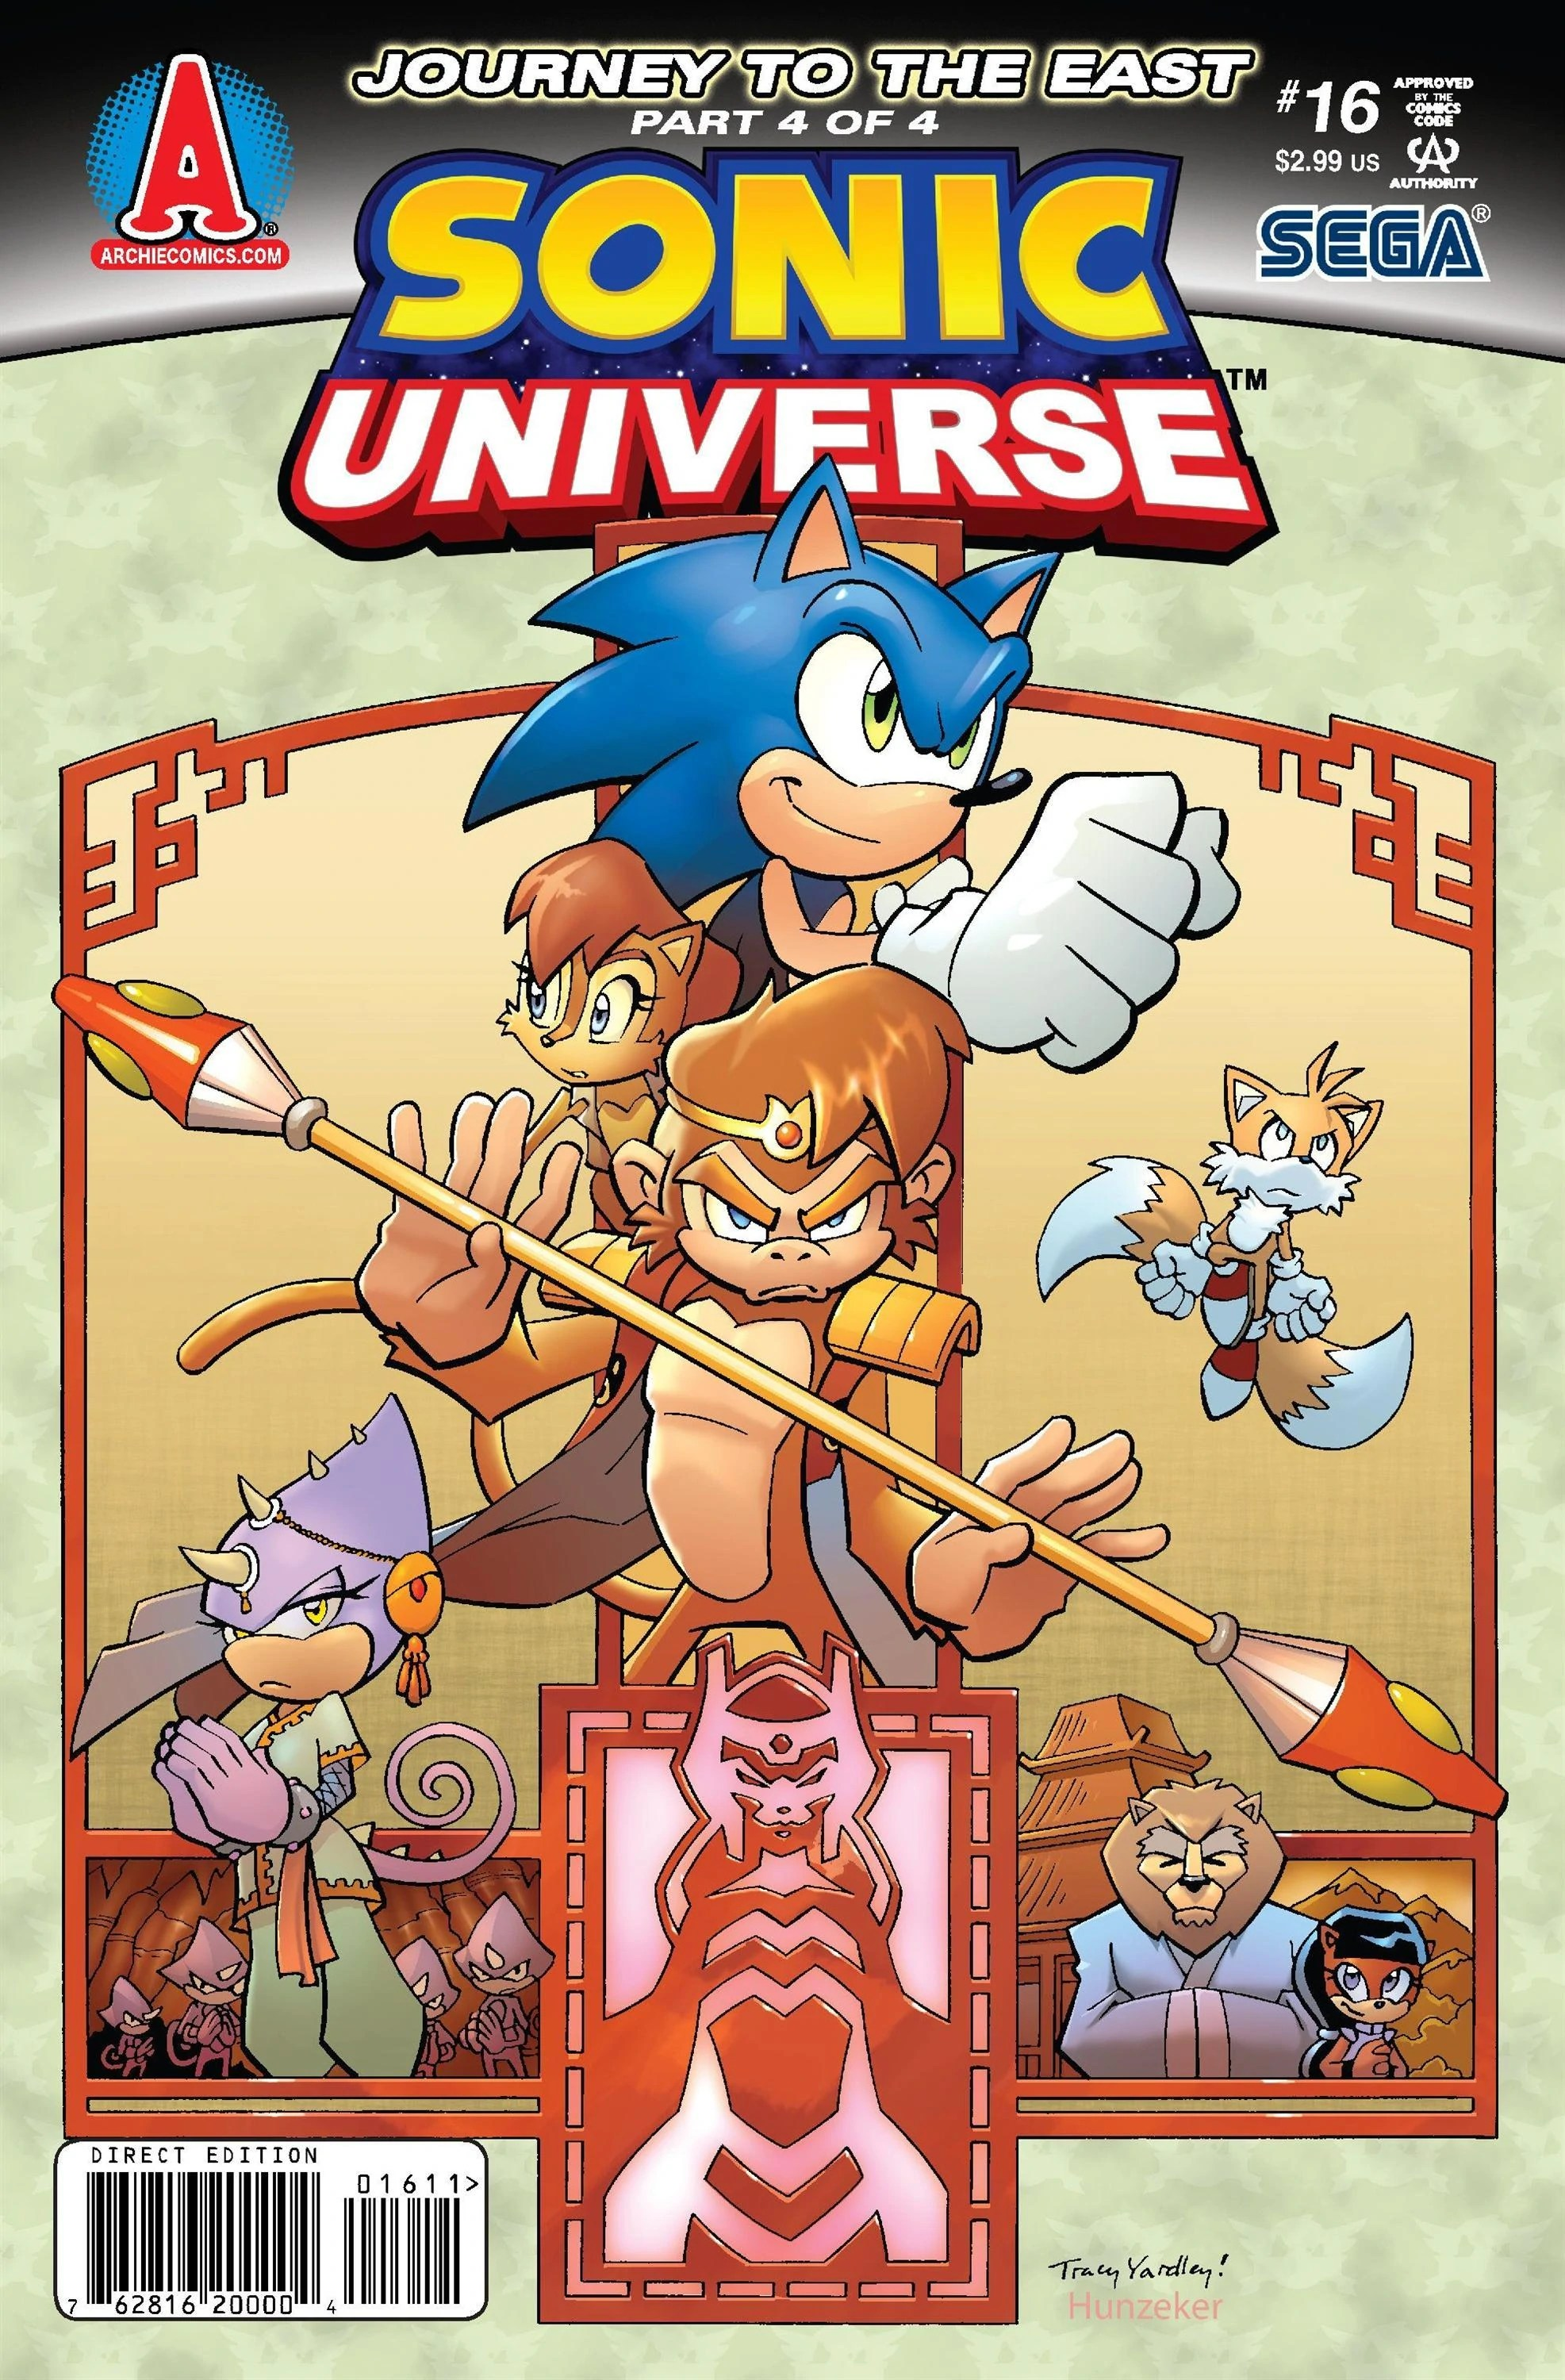 Archie Sonic Universe Issue 16  Mobius Encyclopaedia  Fandom powered by Wikia